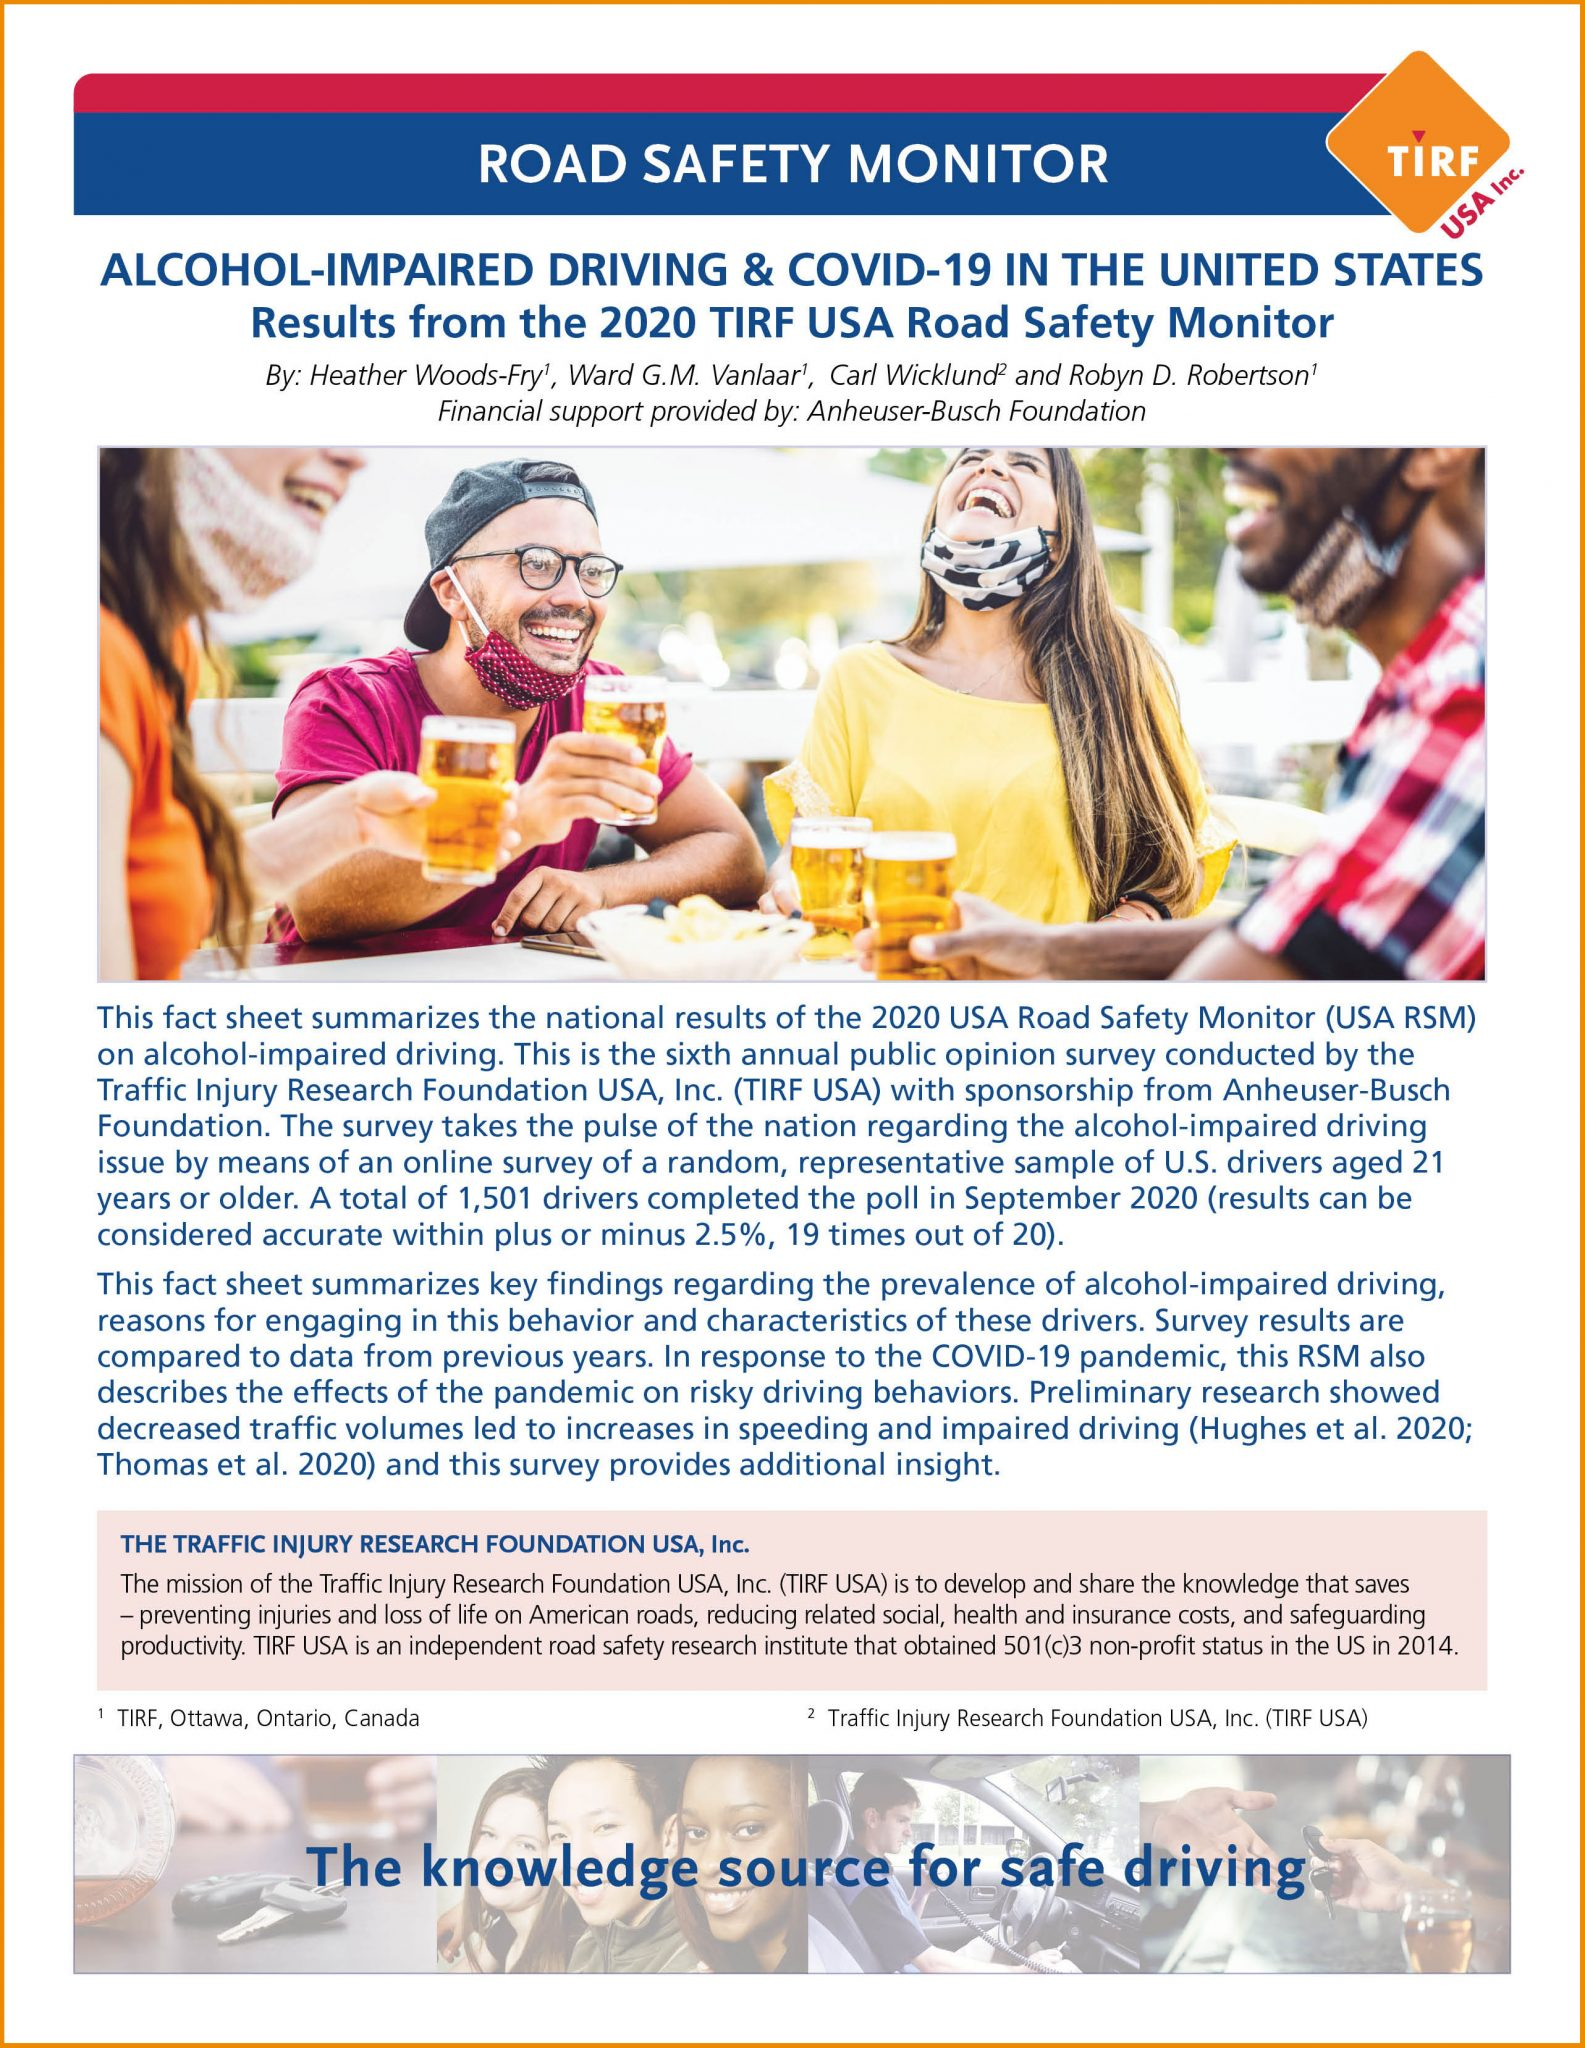 Road Safety Monitor: Alcohol-Impaired Driving & COVID-19 in the United States, 2020